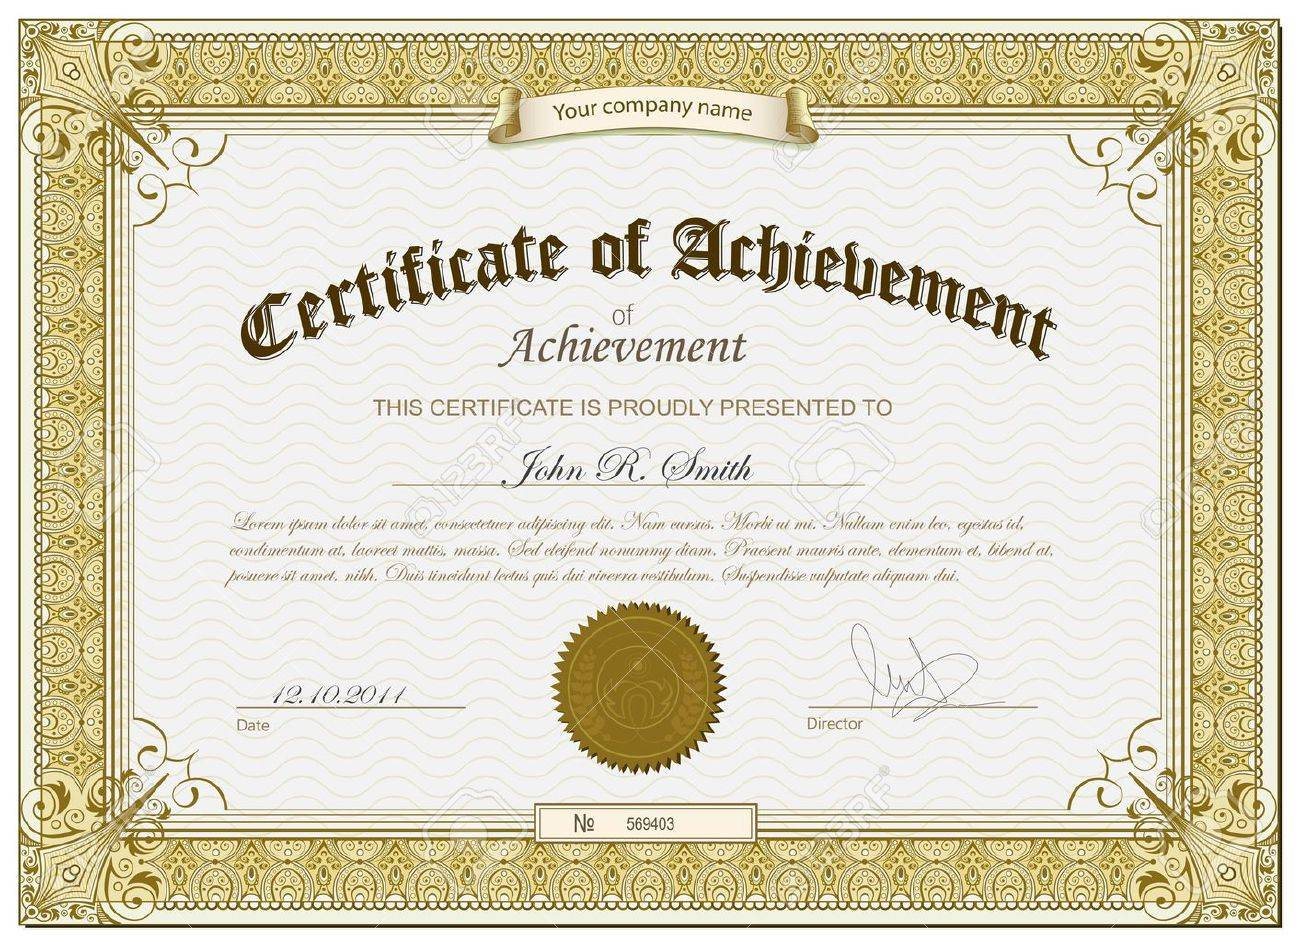 certificate frame stock photos images royalty free certificate